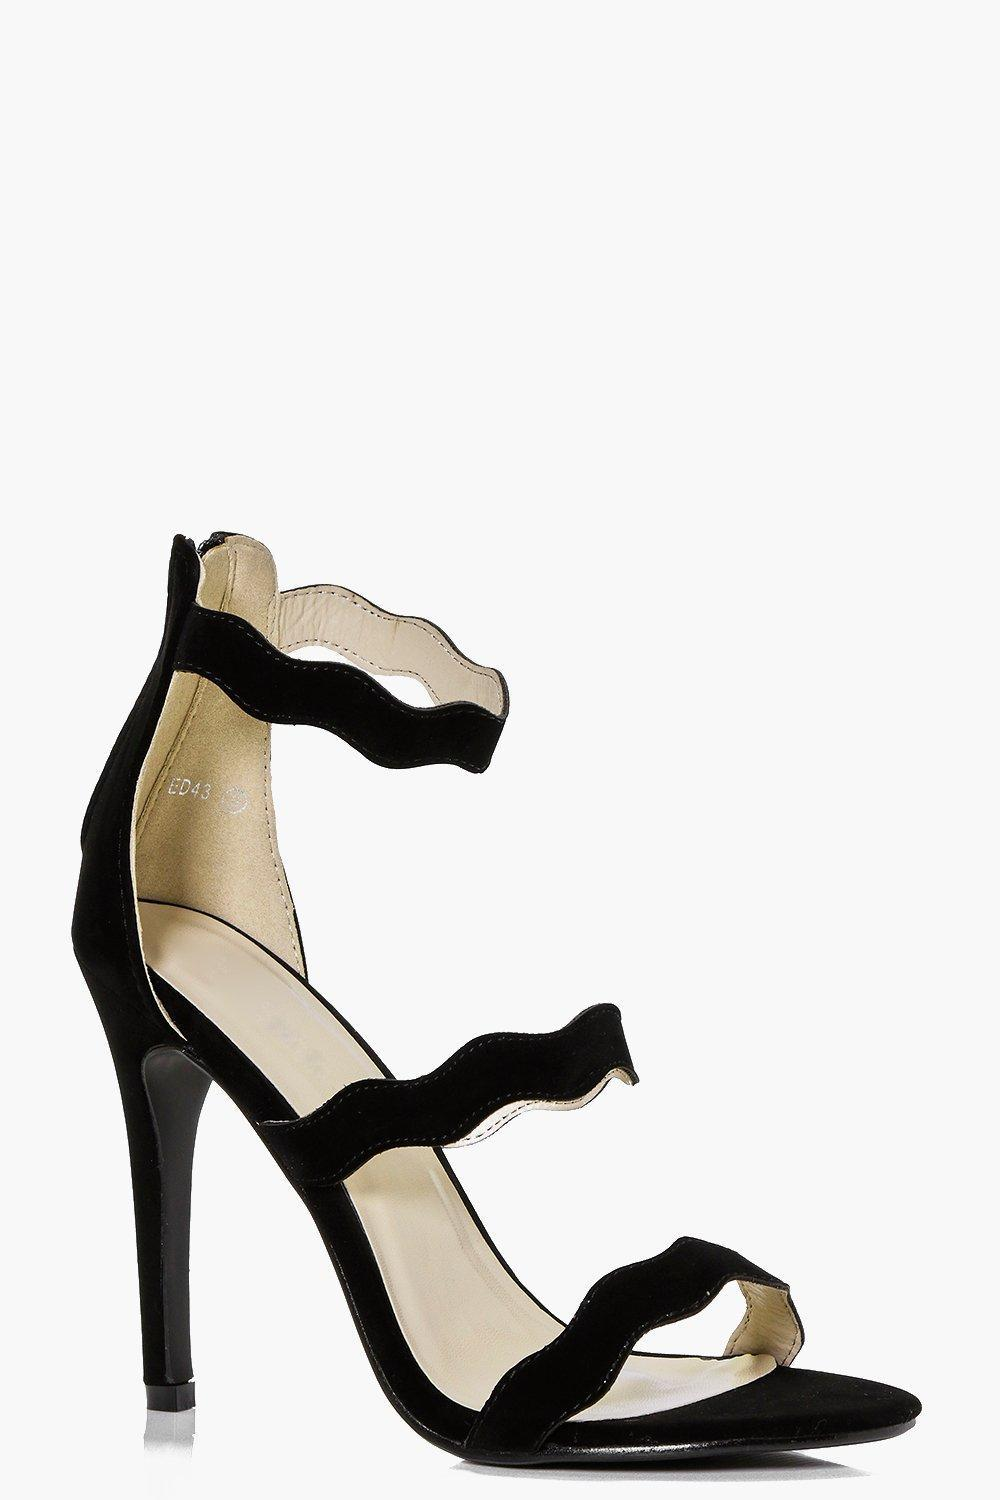 Three Wave Strap Heels Black - predominant colour: black; occasions: evening, occasion; material: faux leather; heel height: high; ankle detail: ankle strap; heel: stiletto; toe: open toe/peeptoe; style: strappy; finish: plain; pattern: plain; season: s/s 2016; wardrobe: event